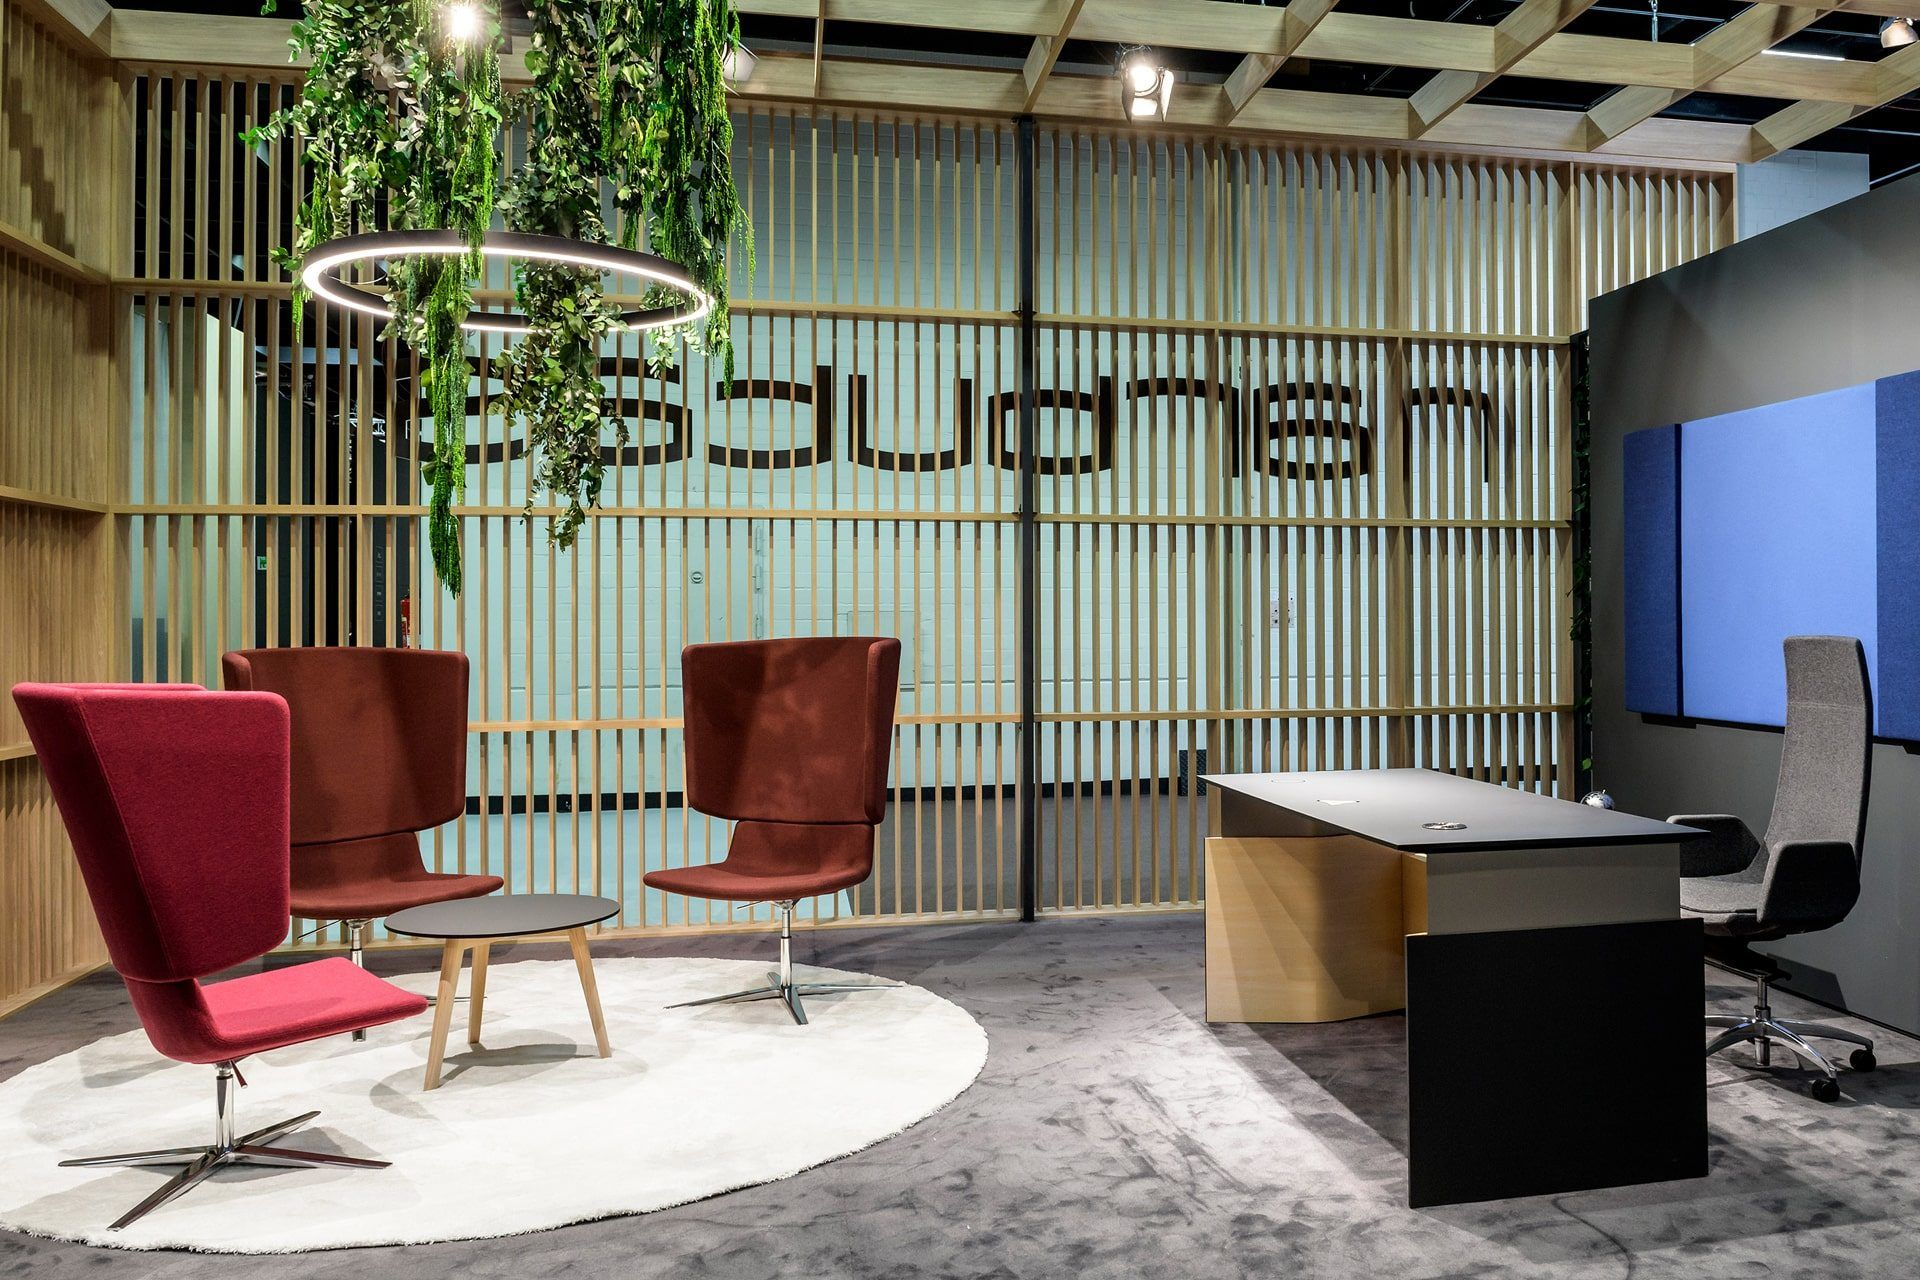 NARBUTAS furniture exhibition stand at Orgatec 2018, an